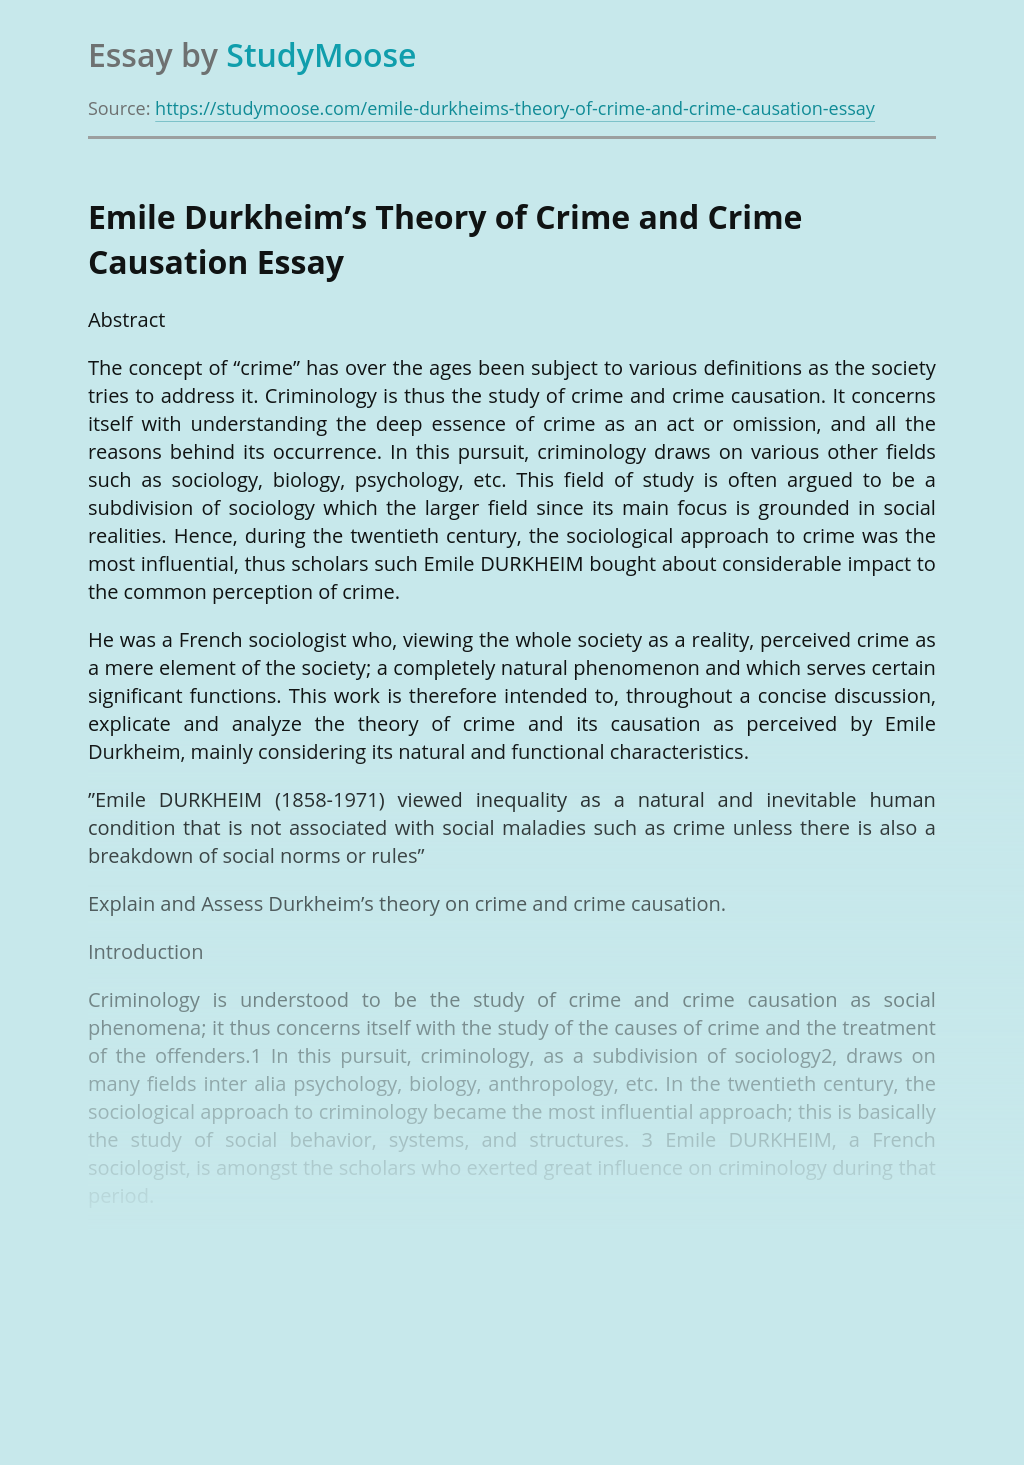 Emile Durkheim's Theory of Crime and Crime Causation